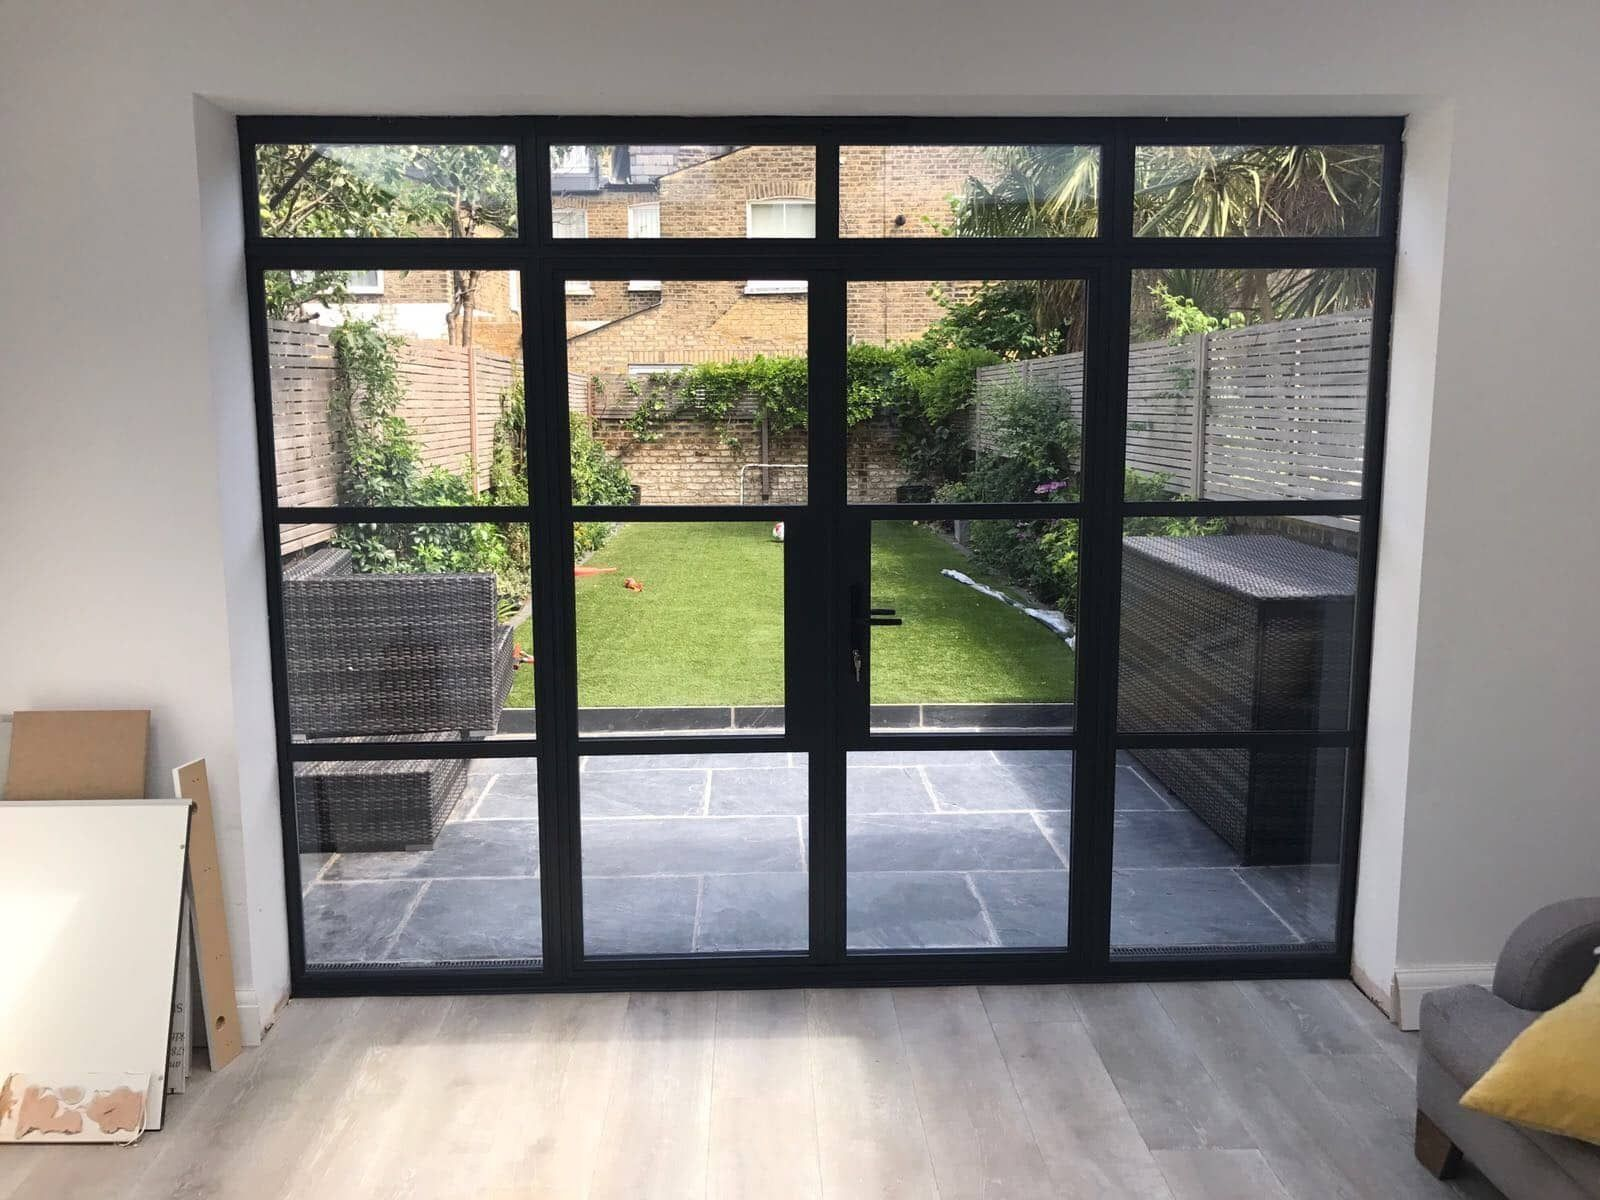 Aluminium Steel Replacement Windows And Doors Give You All The Benefits Of Moder 1000 Nel 2020 Esterno Vetrate Facciata